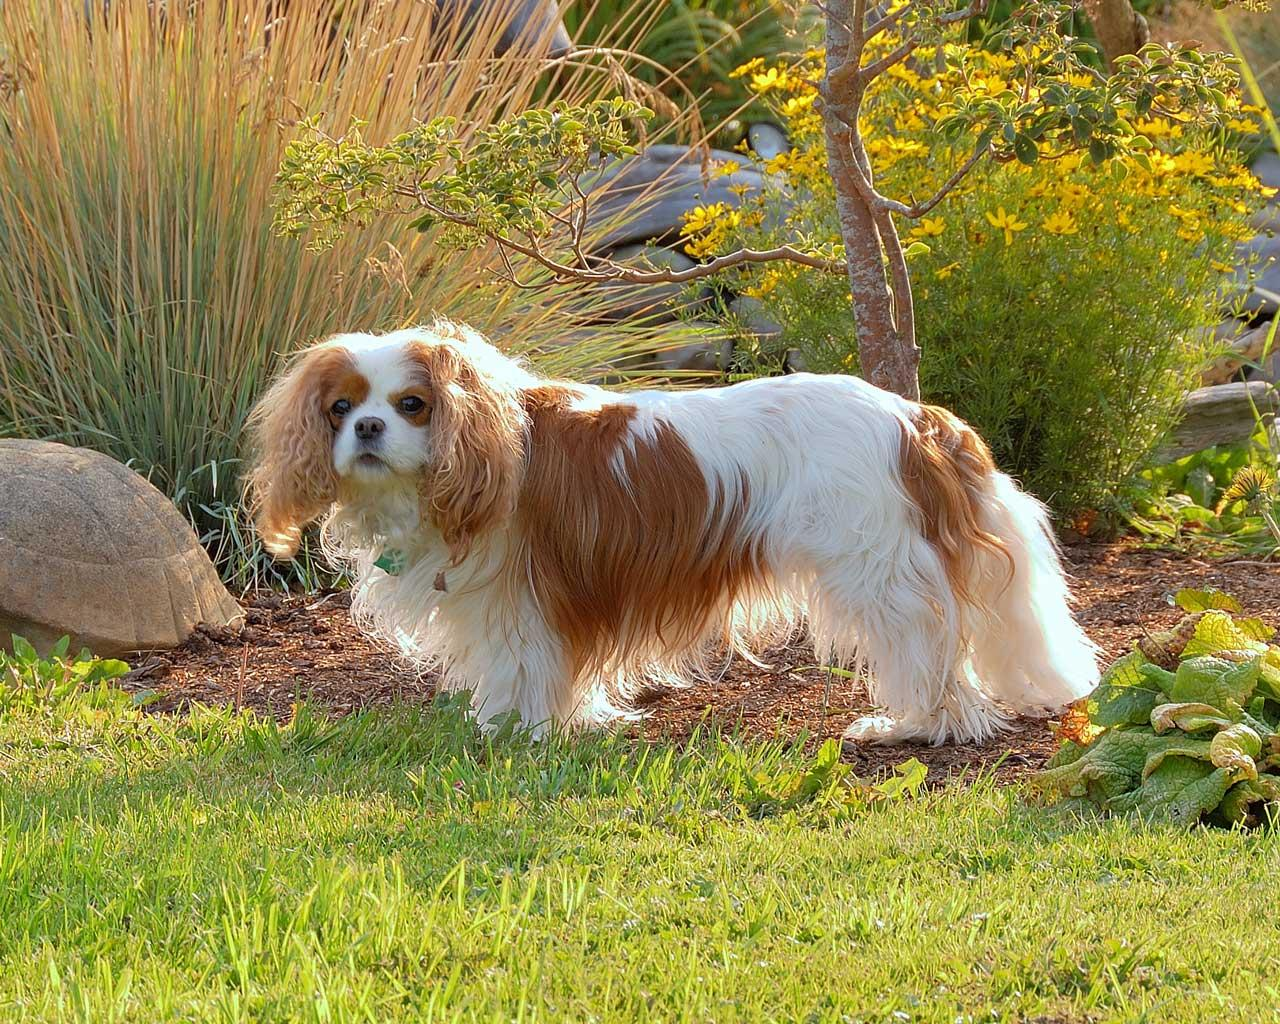 English Toy Spaniel - Cavalier King Charles in the Garden Wallpaper #3 1280 x 1024